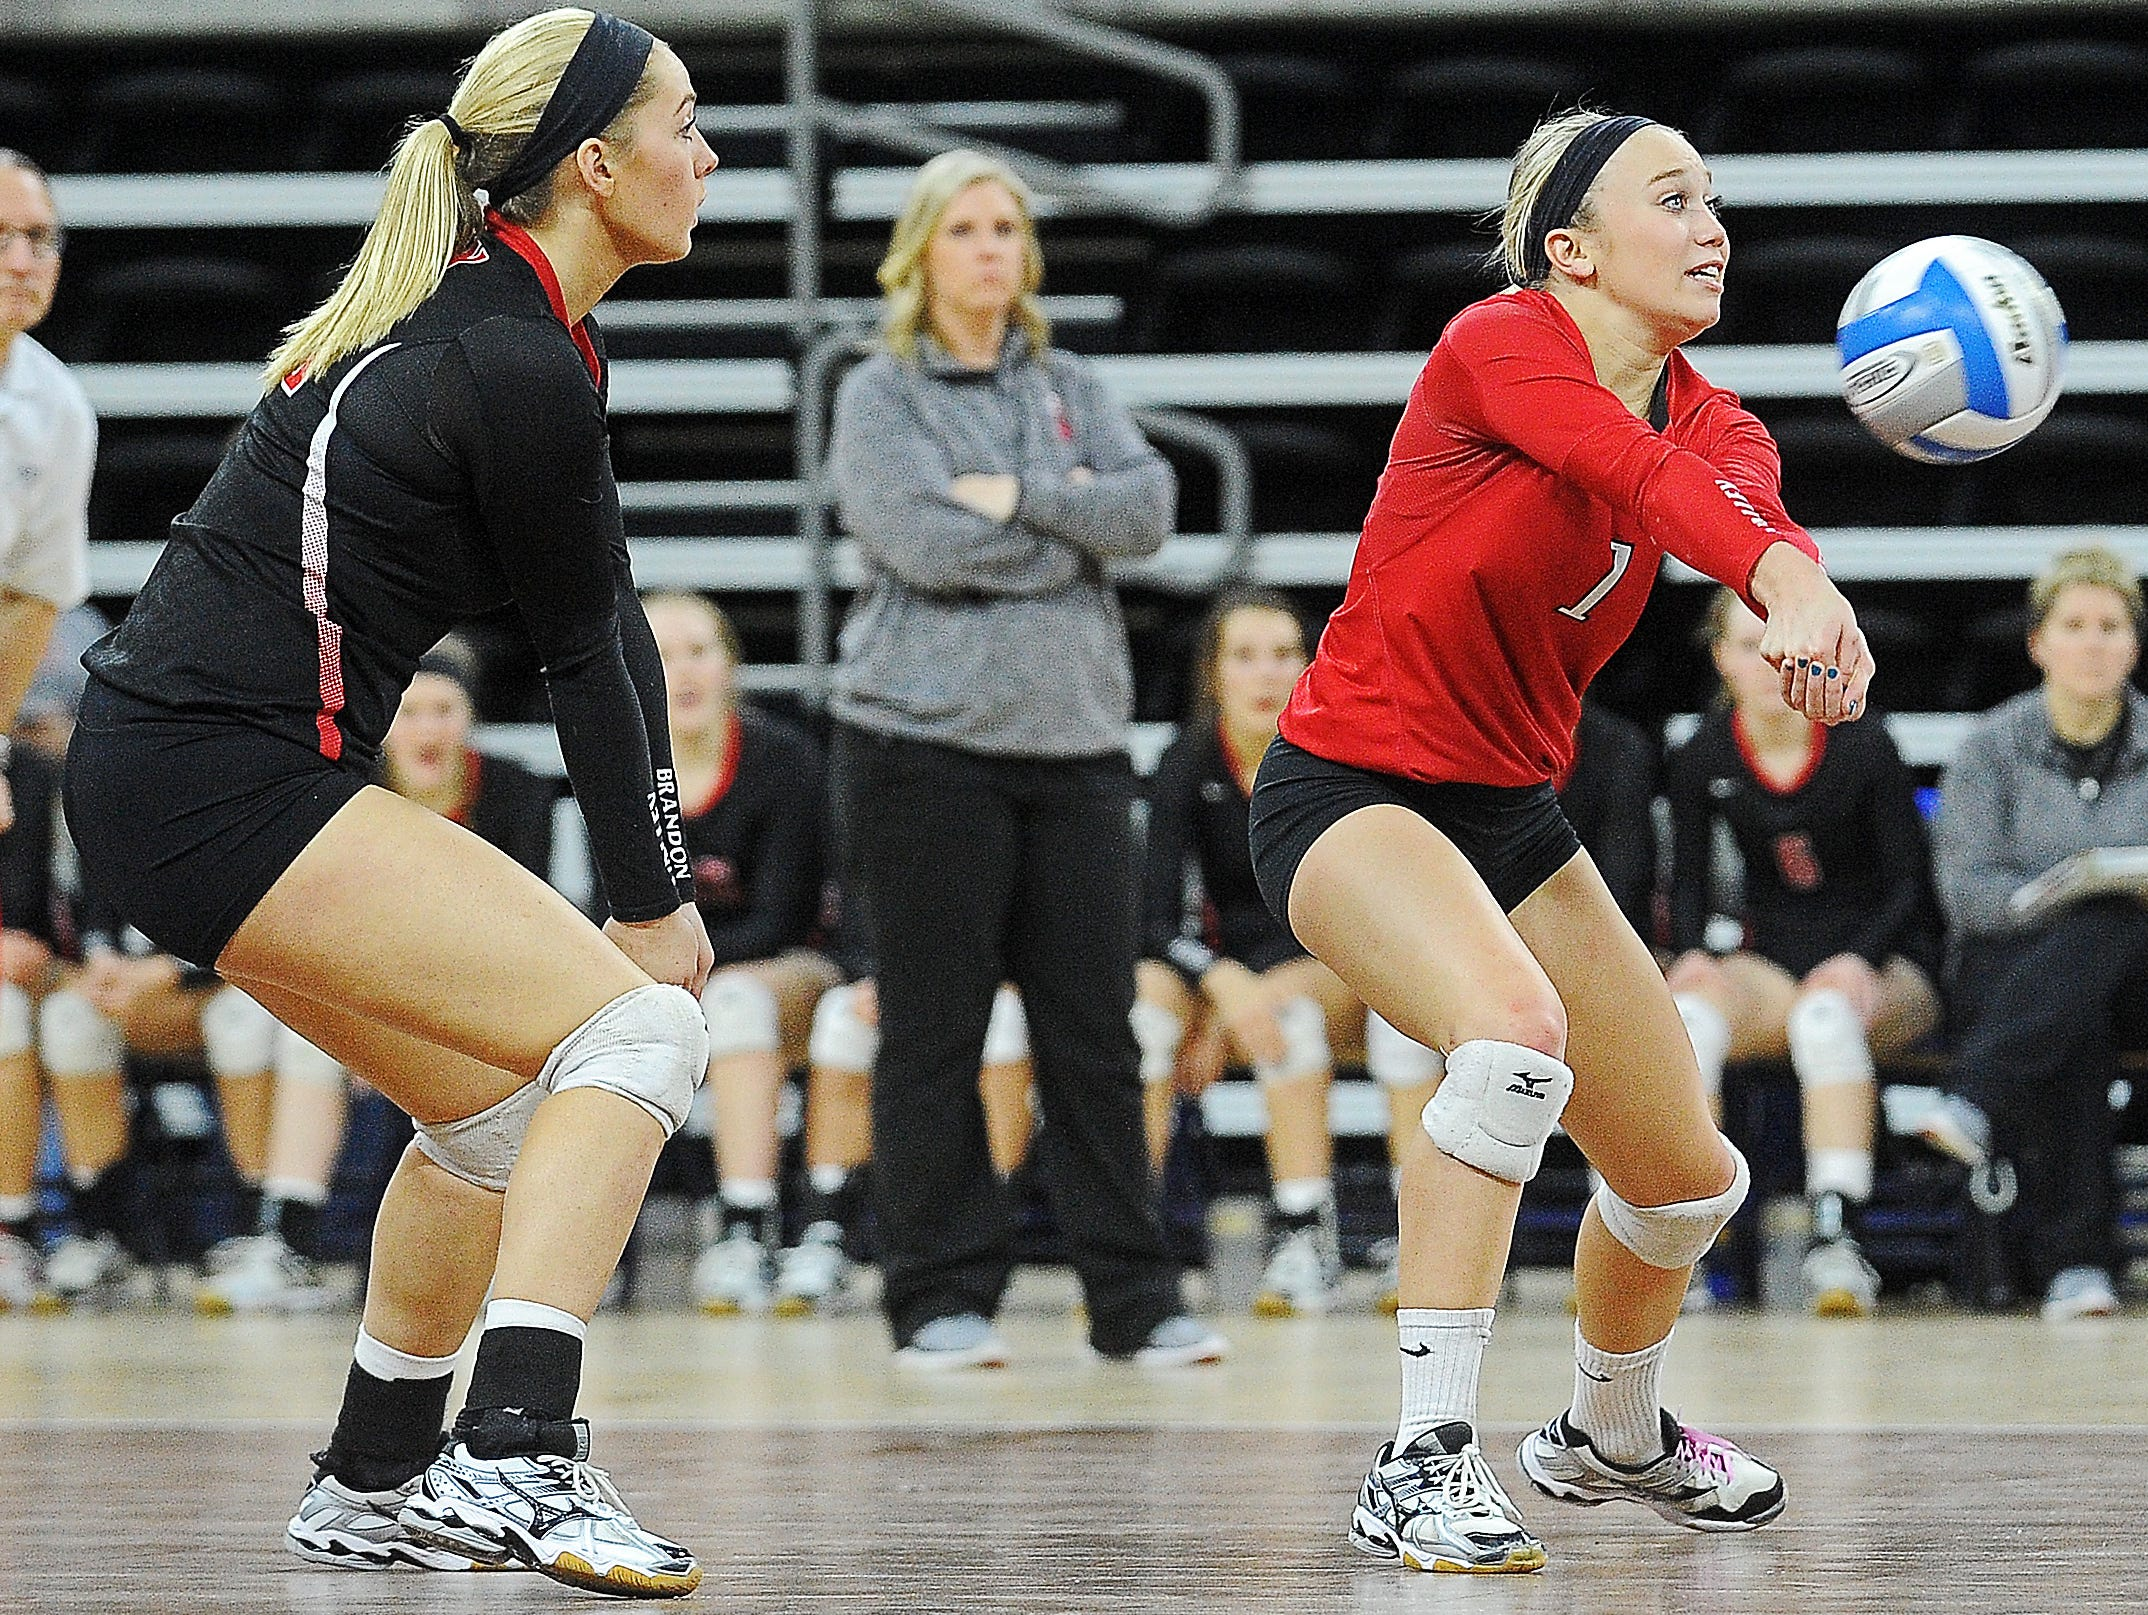 Brandon Valley's Taylor Thorson (1) bumps the ball during the South Dakota State High School Class AA championship volleyball match against Aberdeen Central Saturday, Nov. 21, 2015, at the Denny Sanford Premier Center in Sioux Falls.